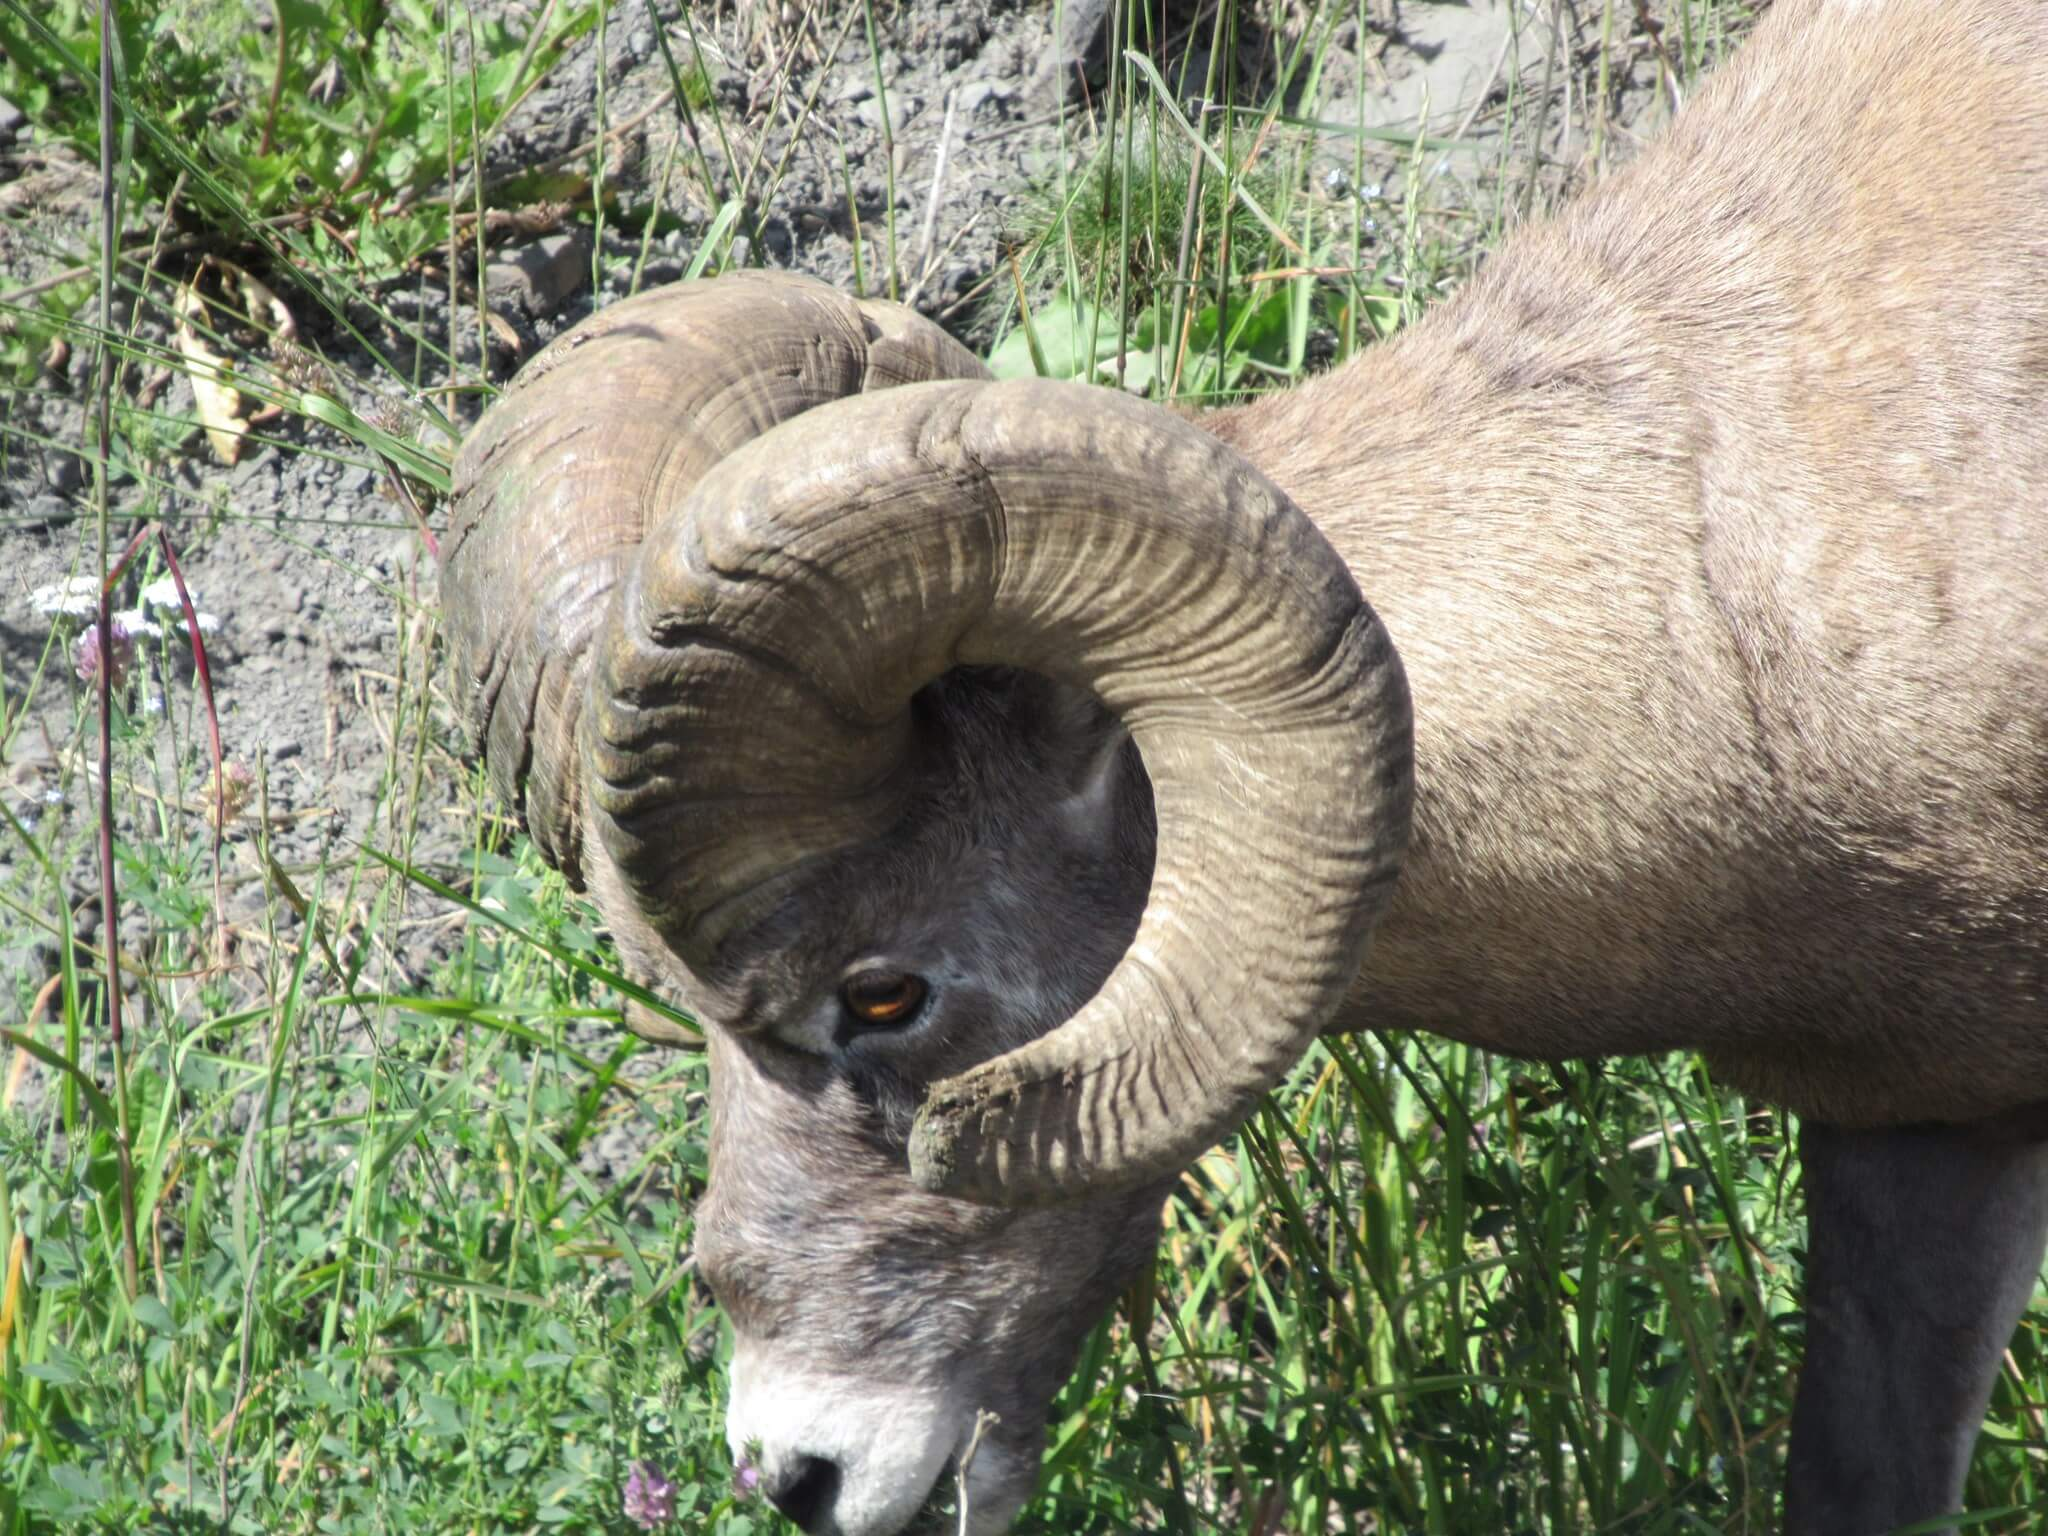 The Hinton area is home to some of the largest mountain sheep in the world.